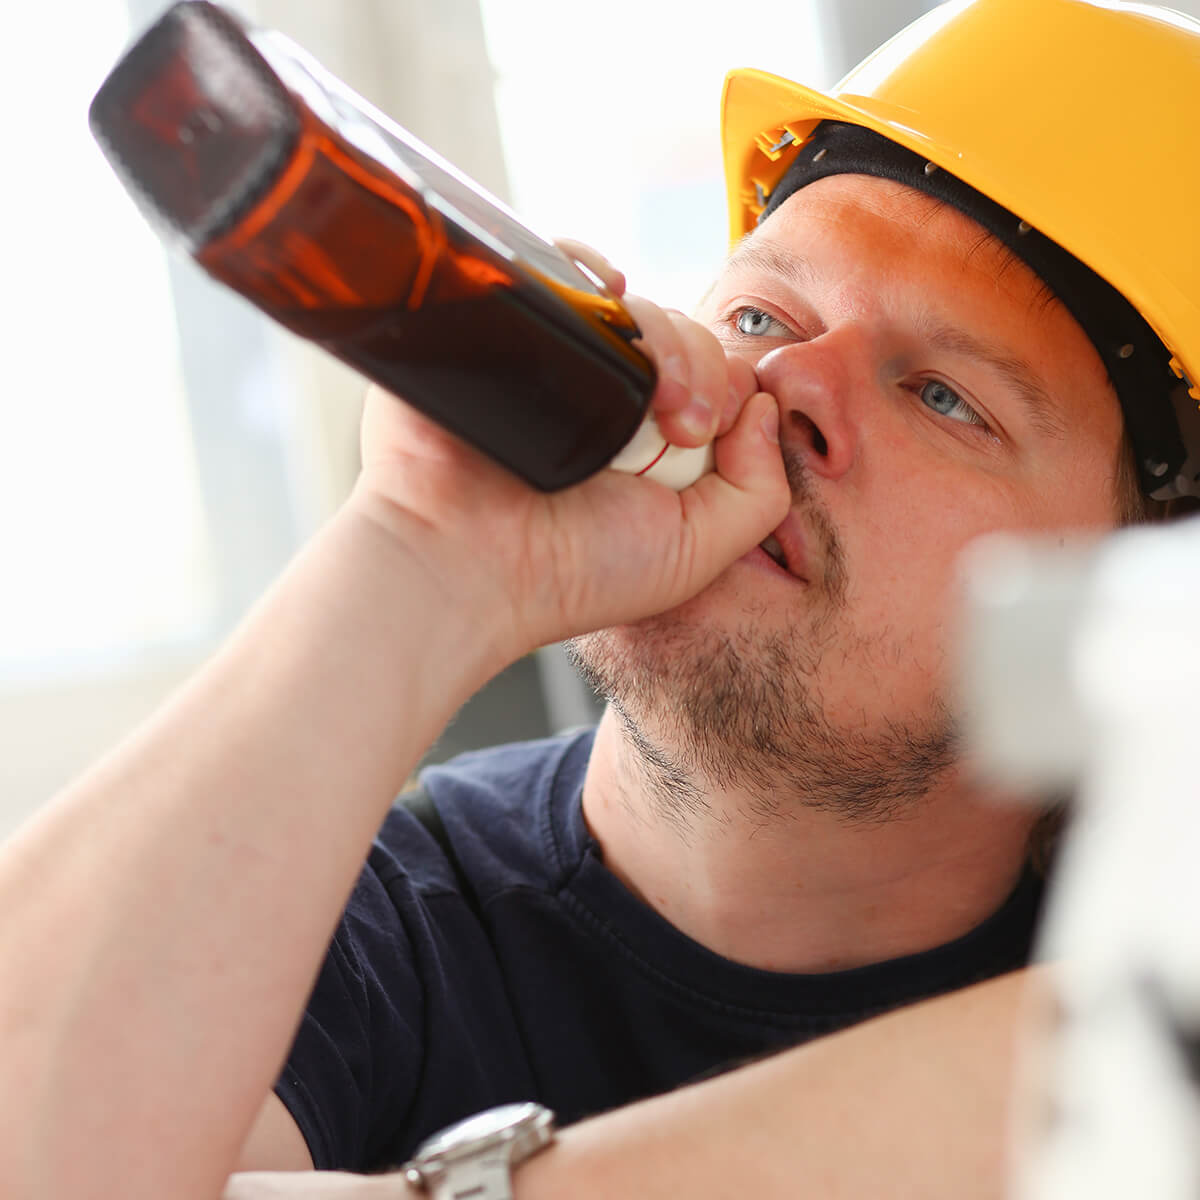 Alcohol Test Worker4